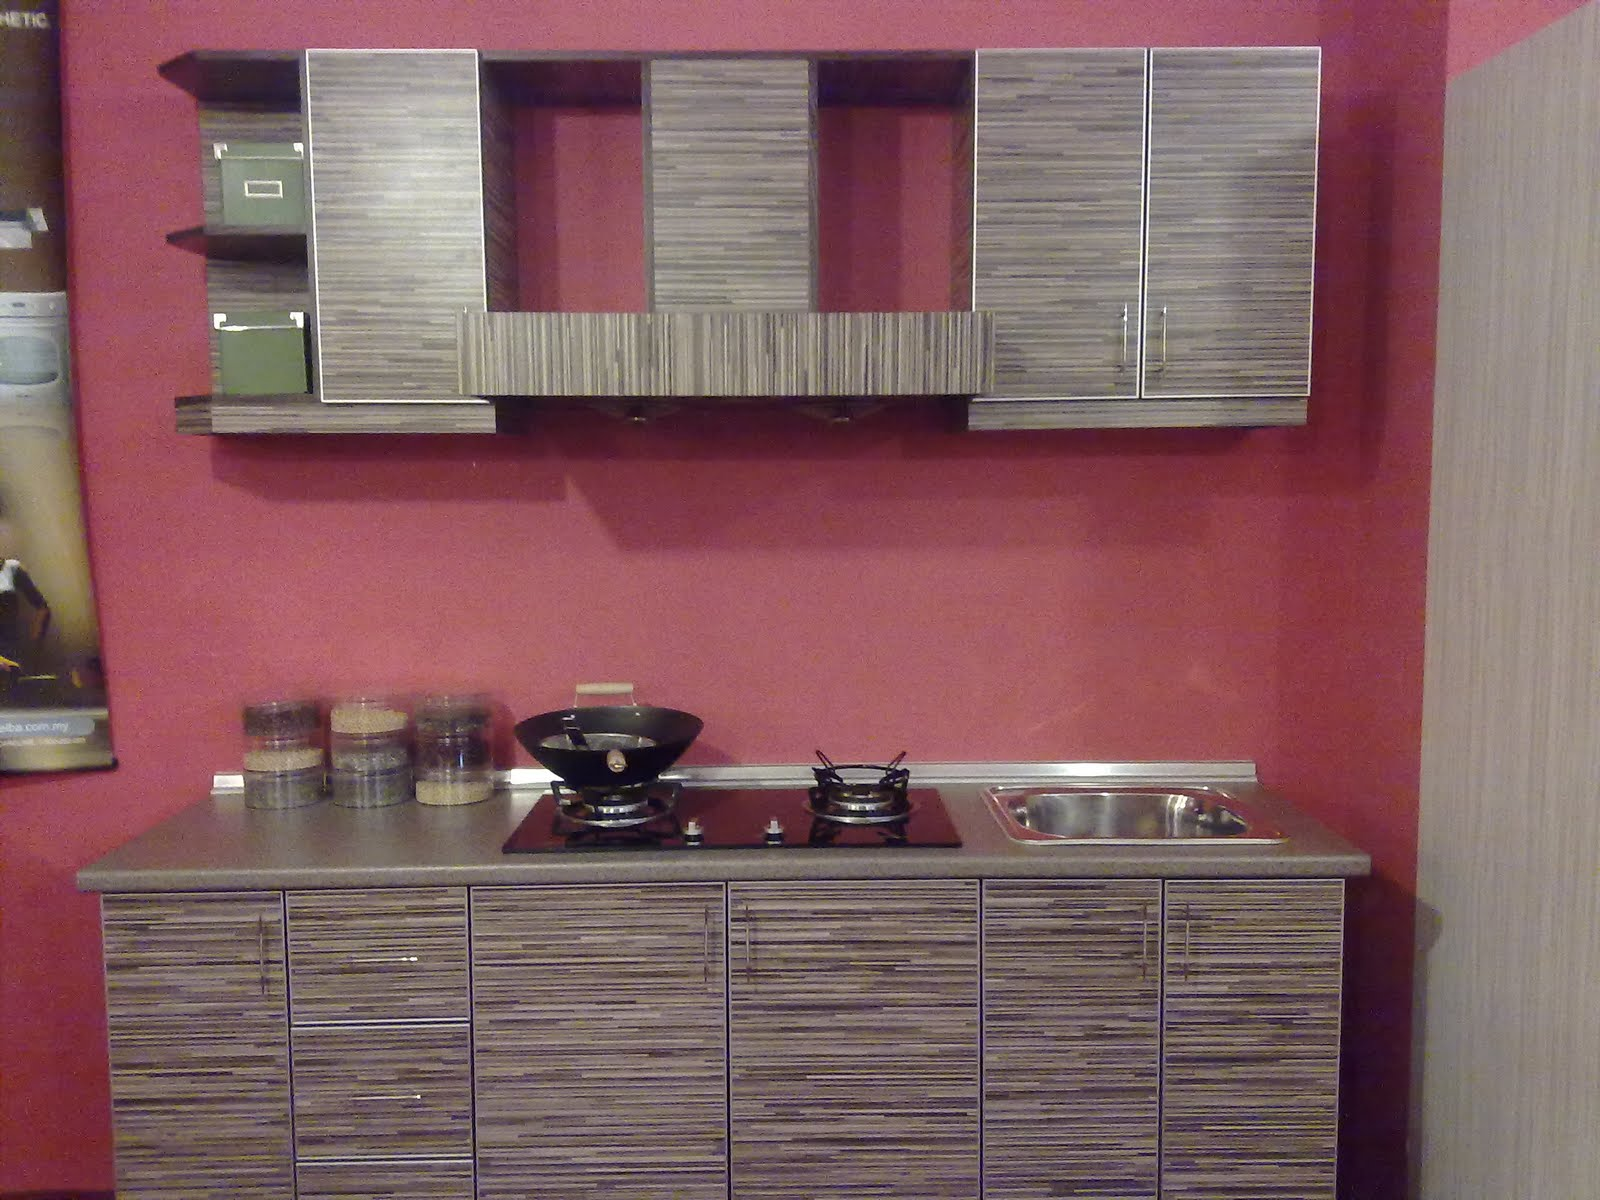 ALL KITCHEN KABINET DAPUR: Promosi